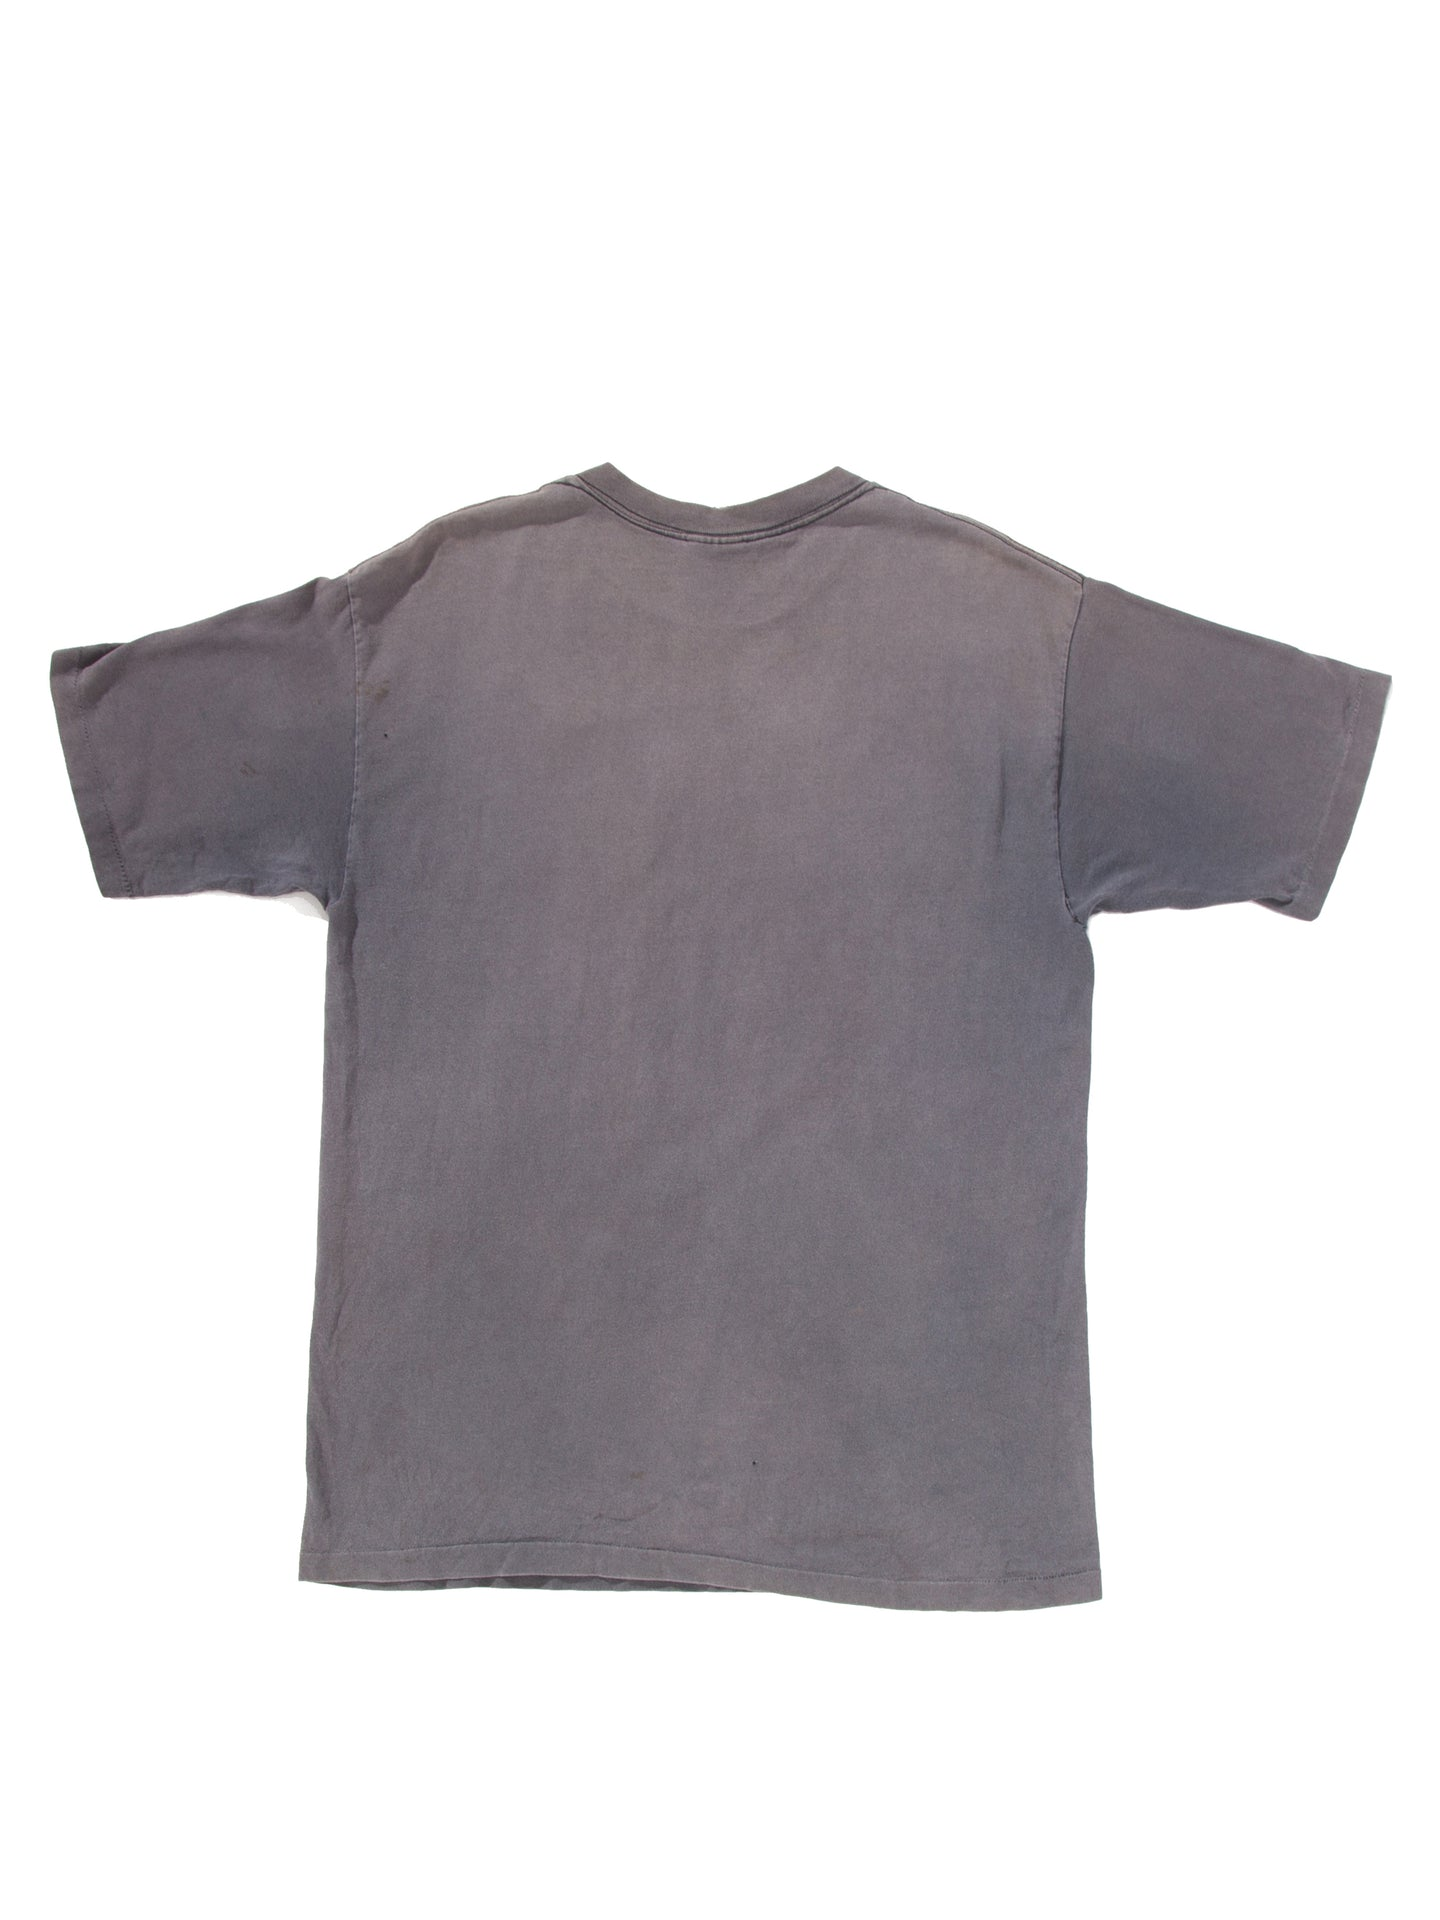 VINTAGE MUSTANG FADED GREY T-SHIRT